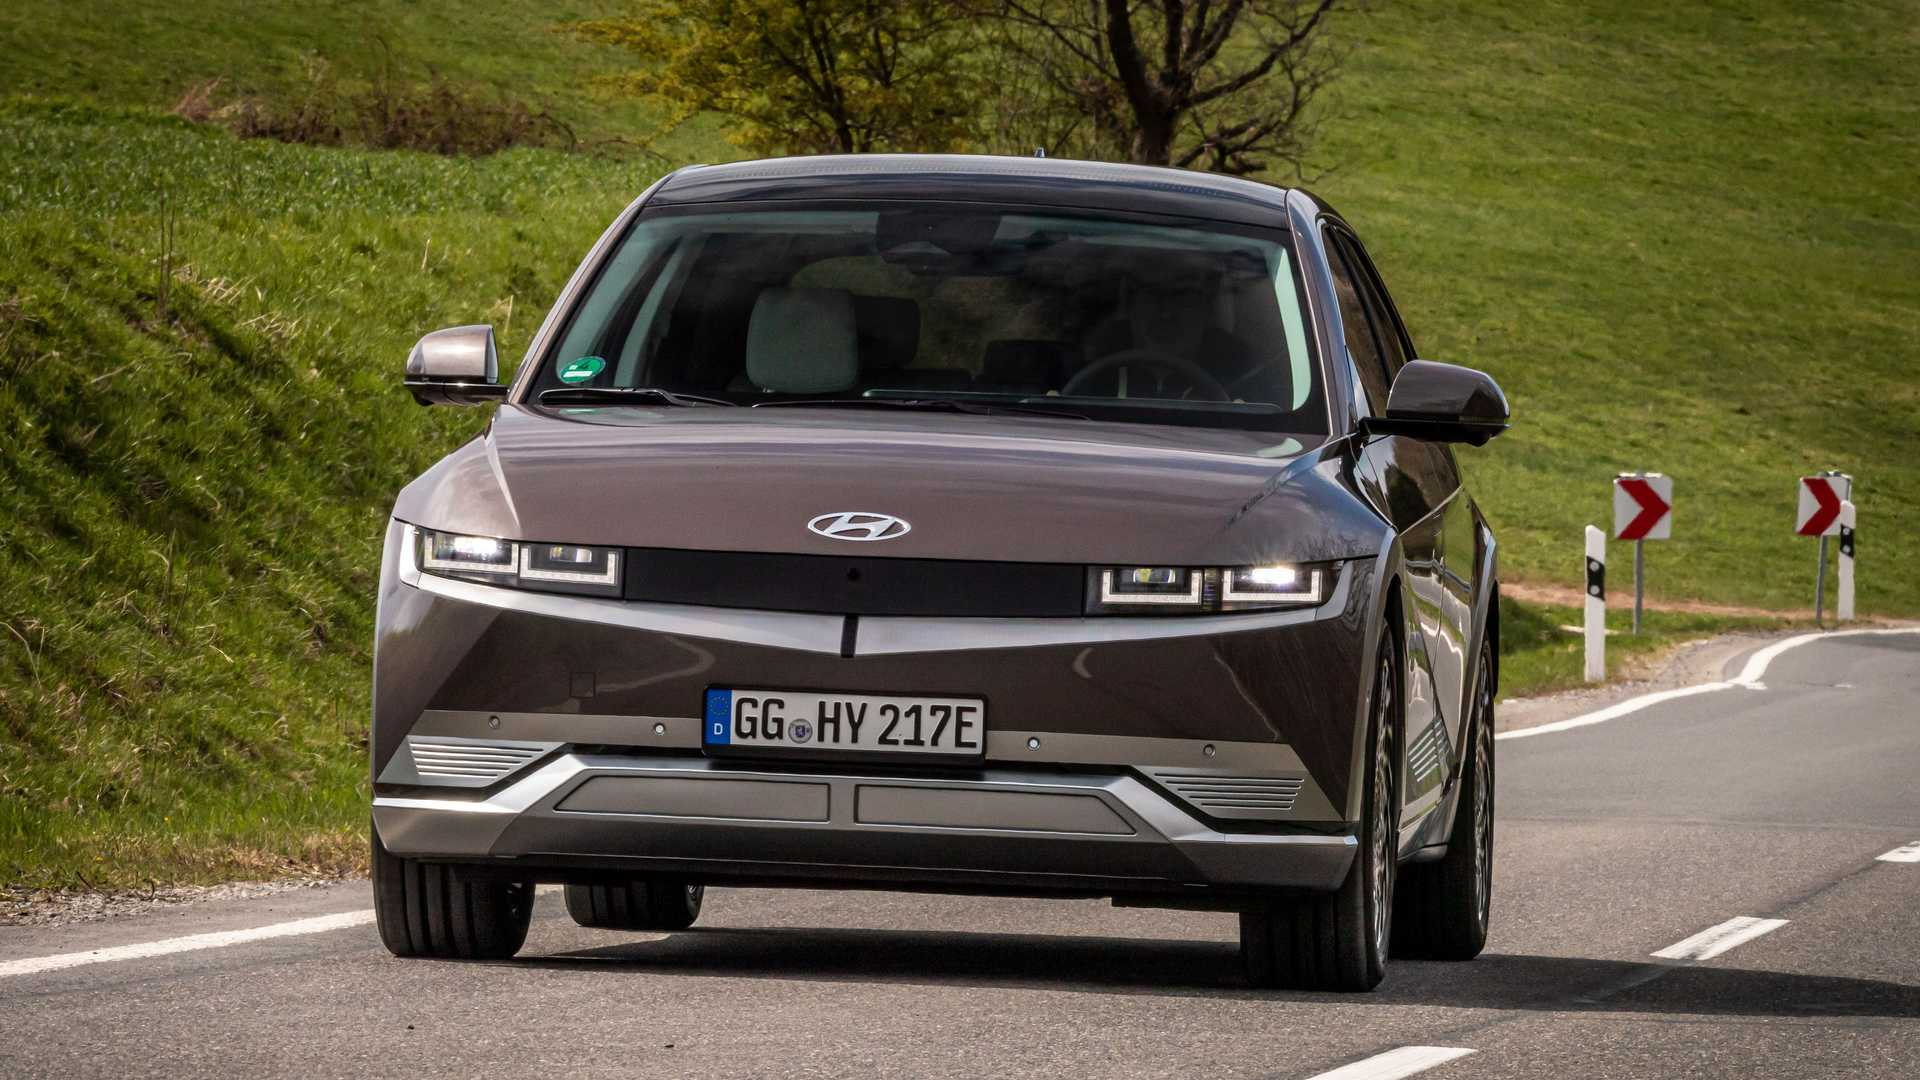 Hyundai is thinking about expanding its Ioniq family with a new compact-sized electric car that would send the Kona Electric to its retirement.